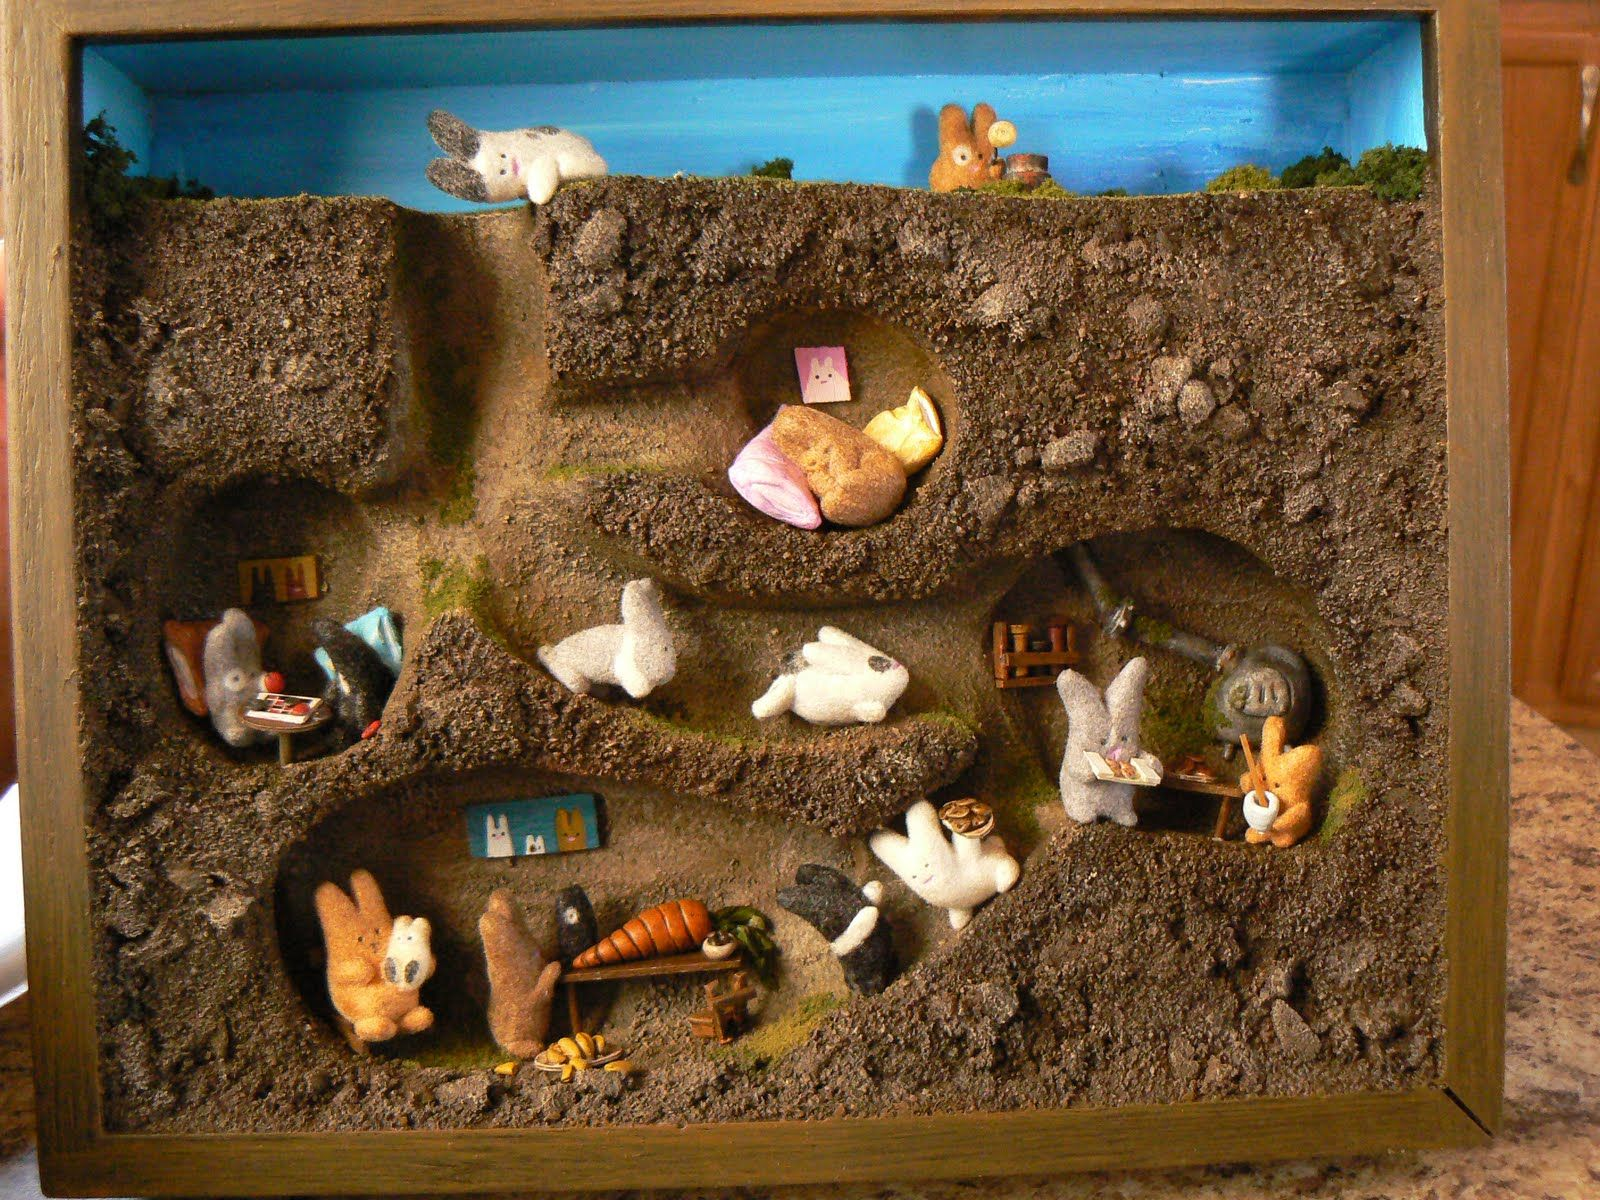 Kids Diorama With Details: Dioramas Are So Much Fun To Make With Kids And It's Also A